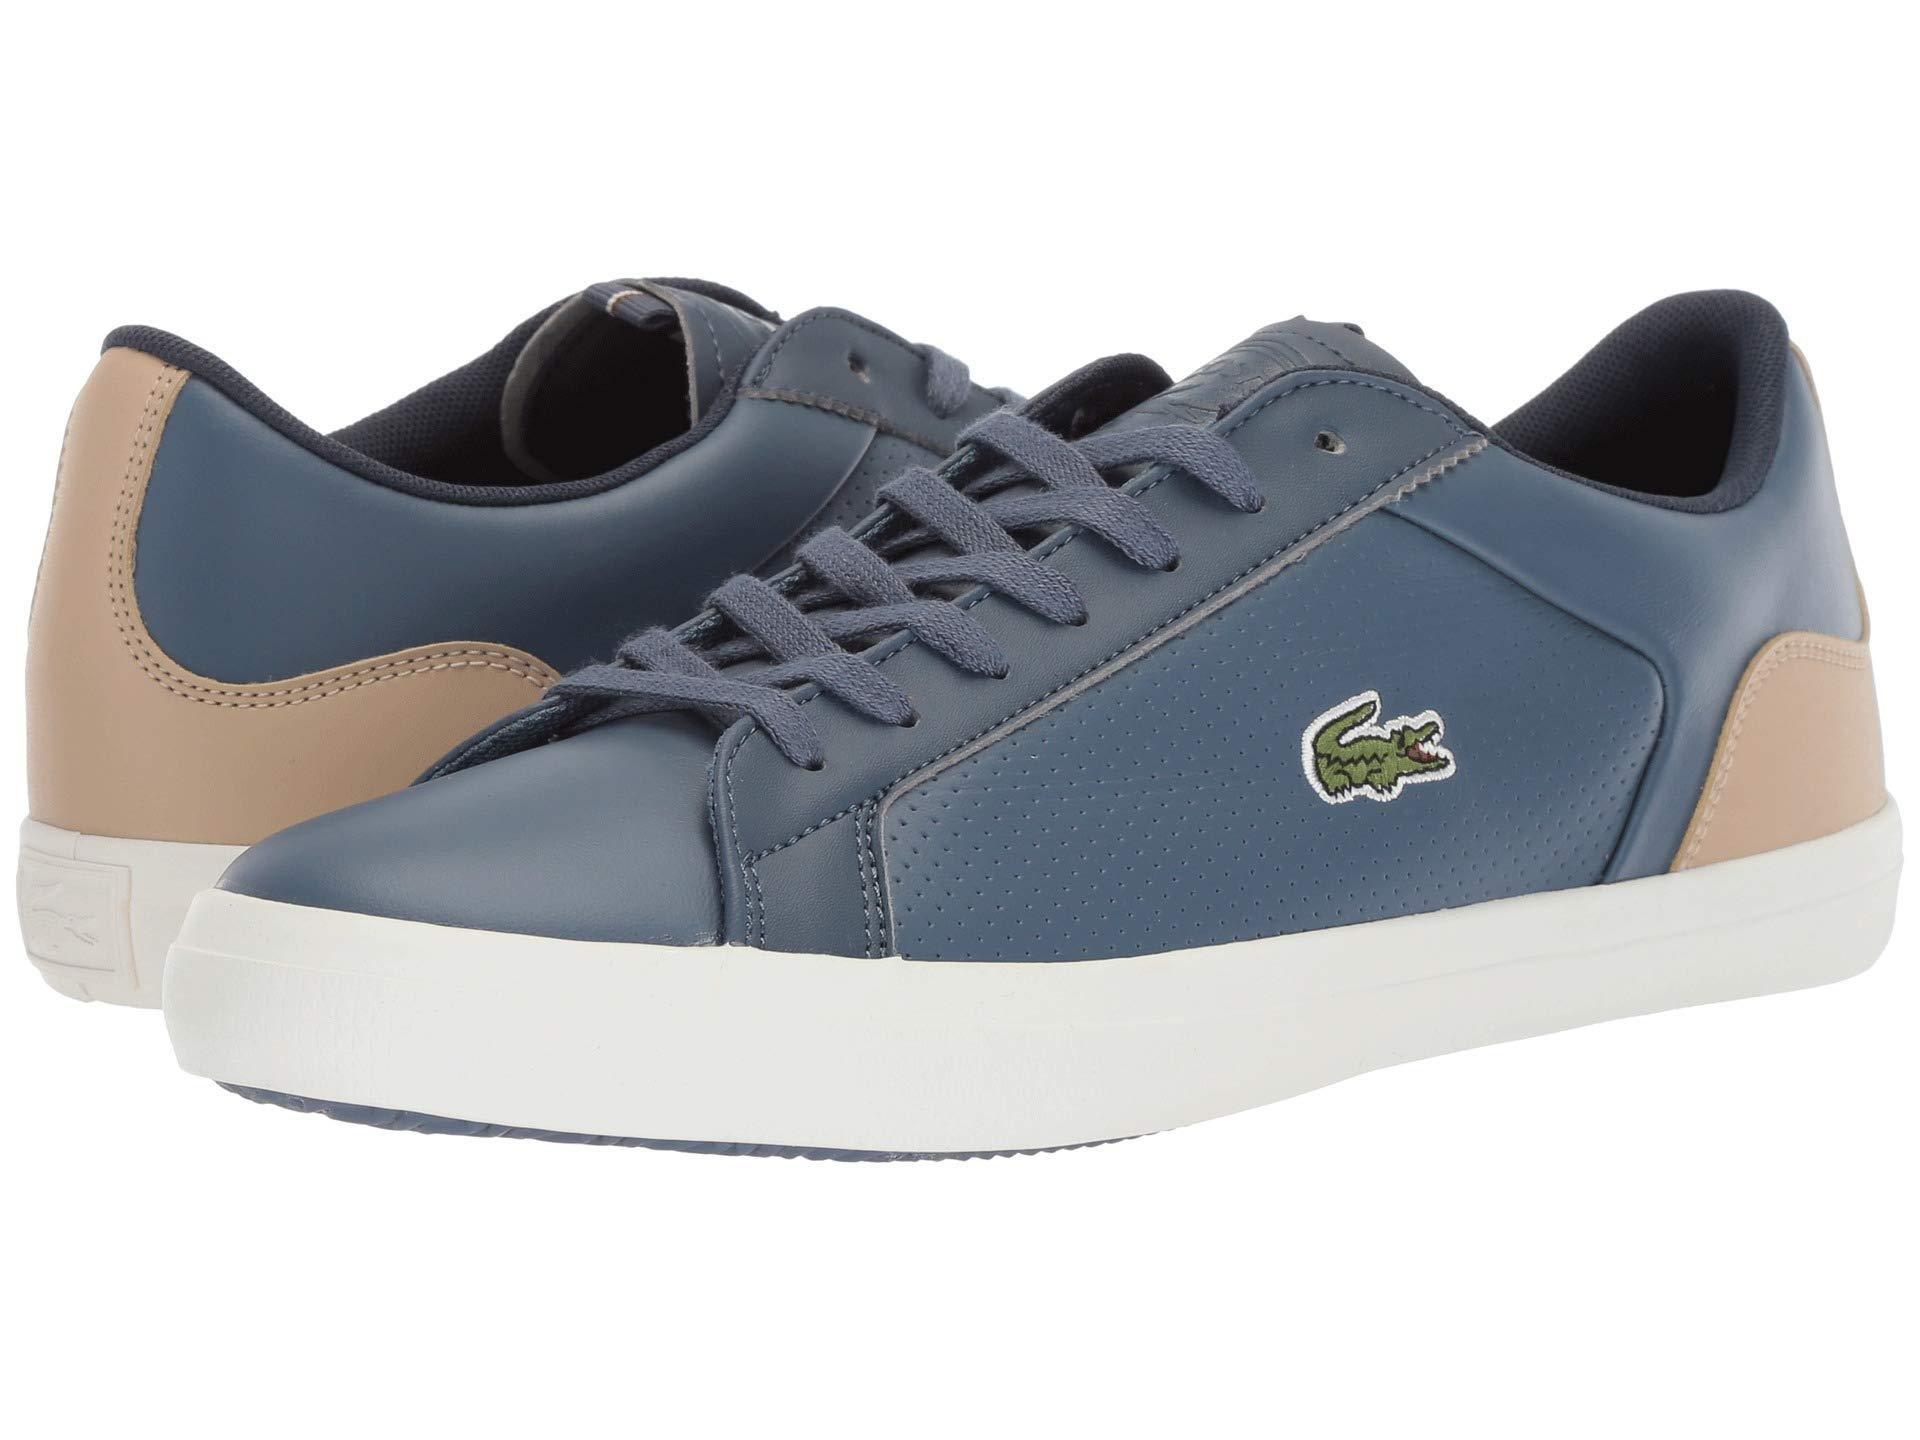 d28790f2591fc Lyst - Lacoste Lerond 418 1 (off-white off-white) Men s Shoes in ...